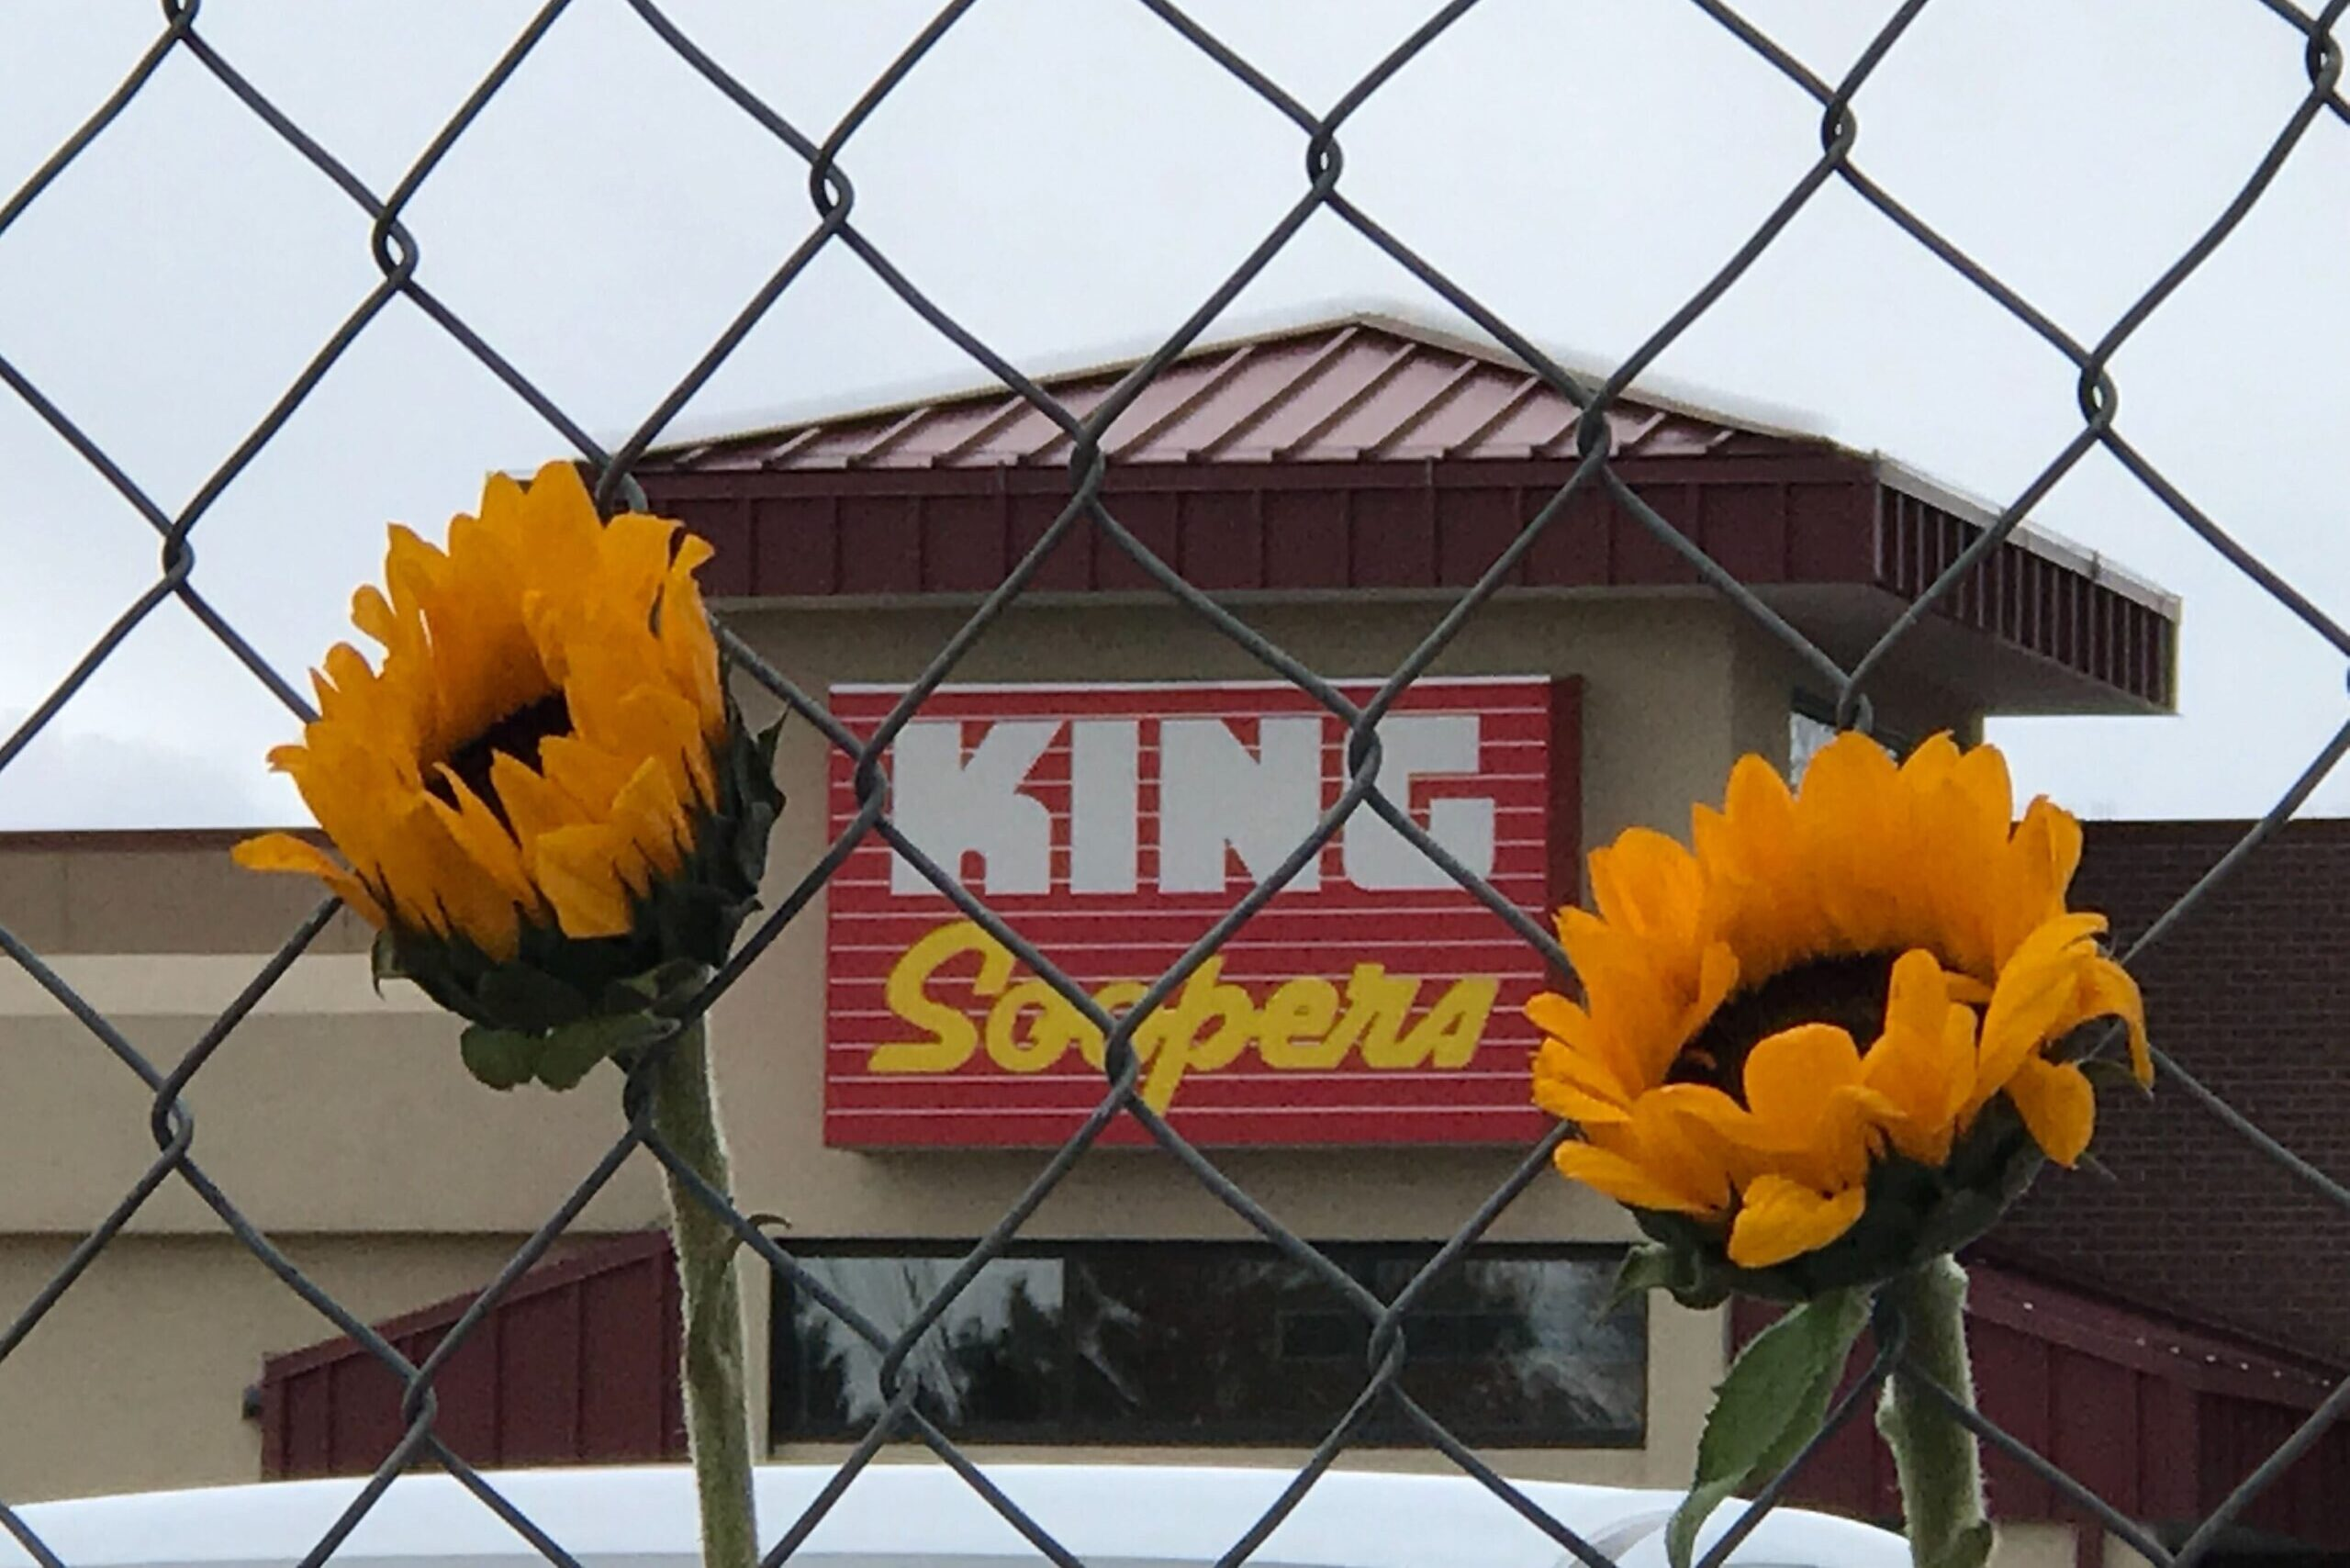 A makeshift memorial grew outside the blocked-off entrance to the Table Mesa King Soopers, March 23, 2021.